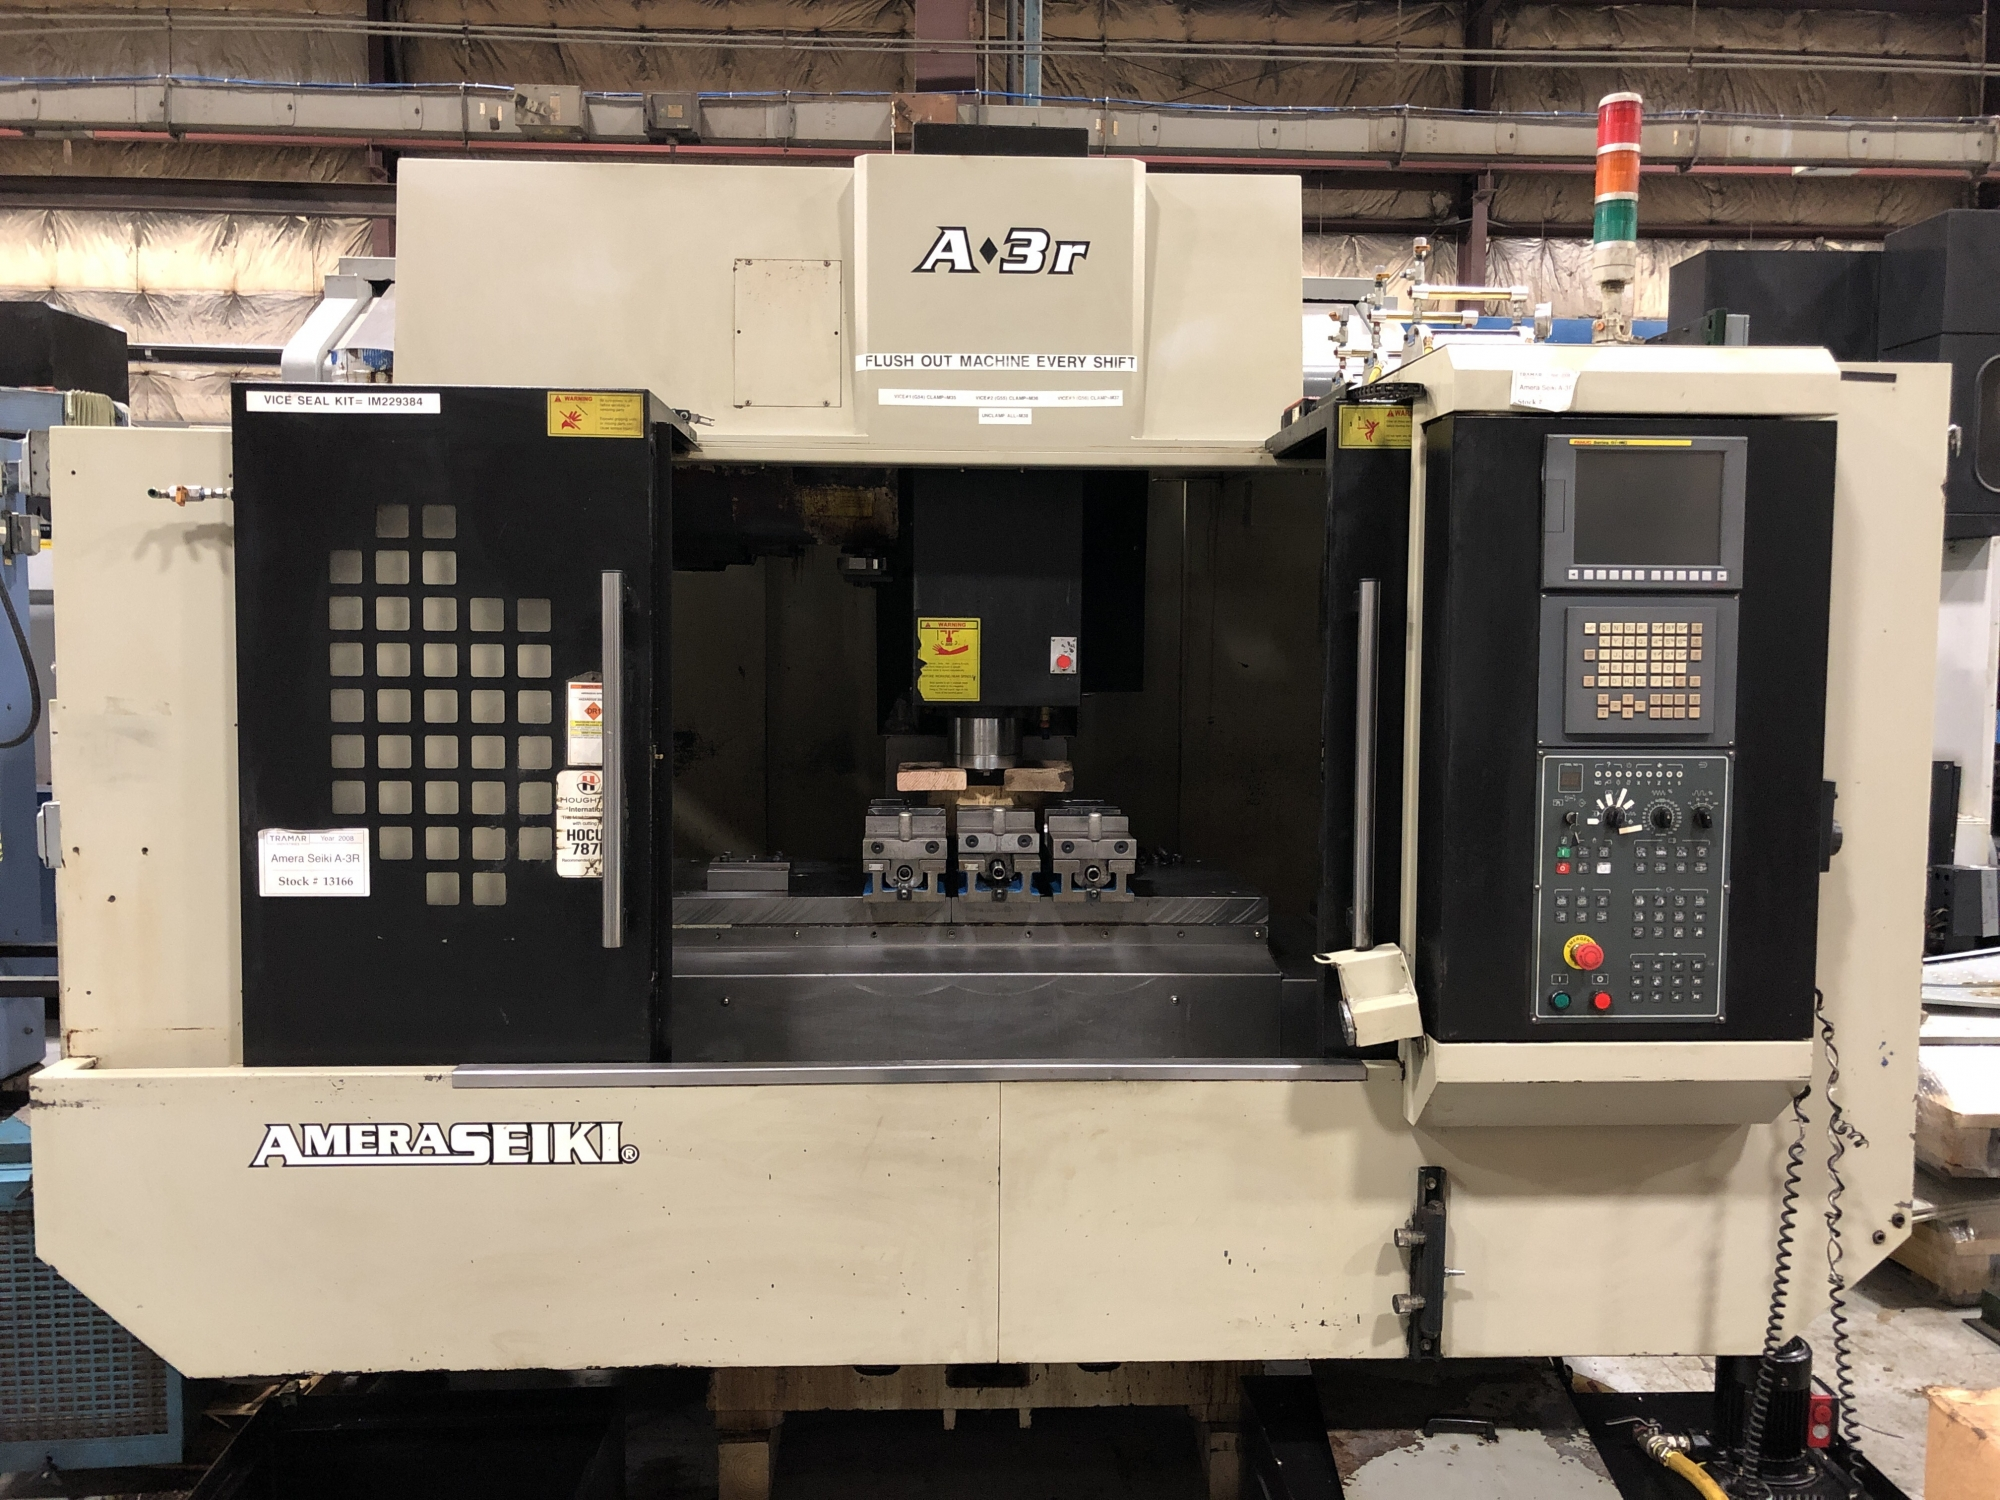 2008 Amera Seiki A-3R - Vertical Machining Center